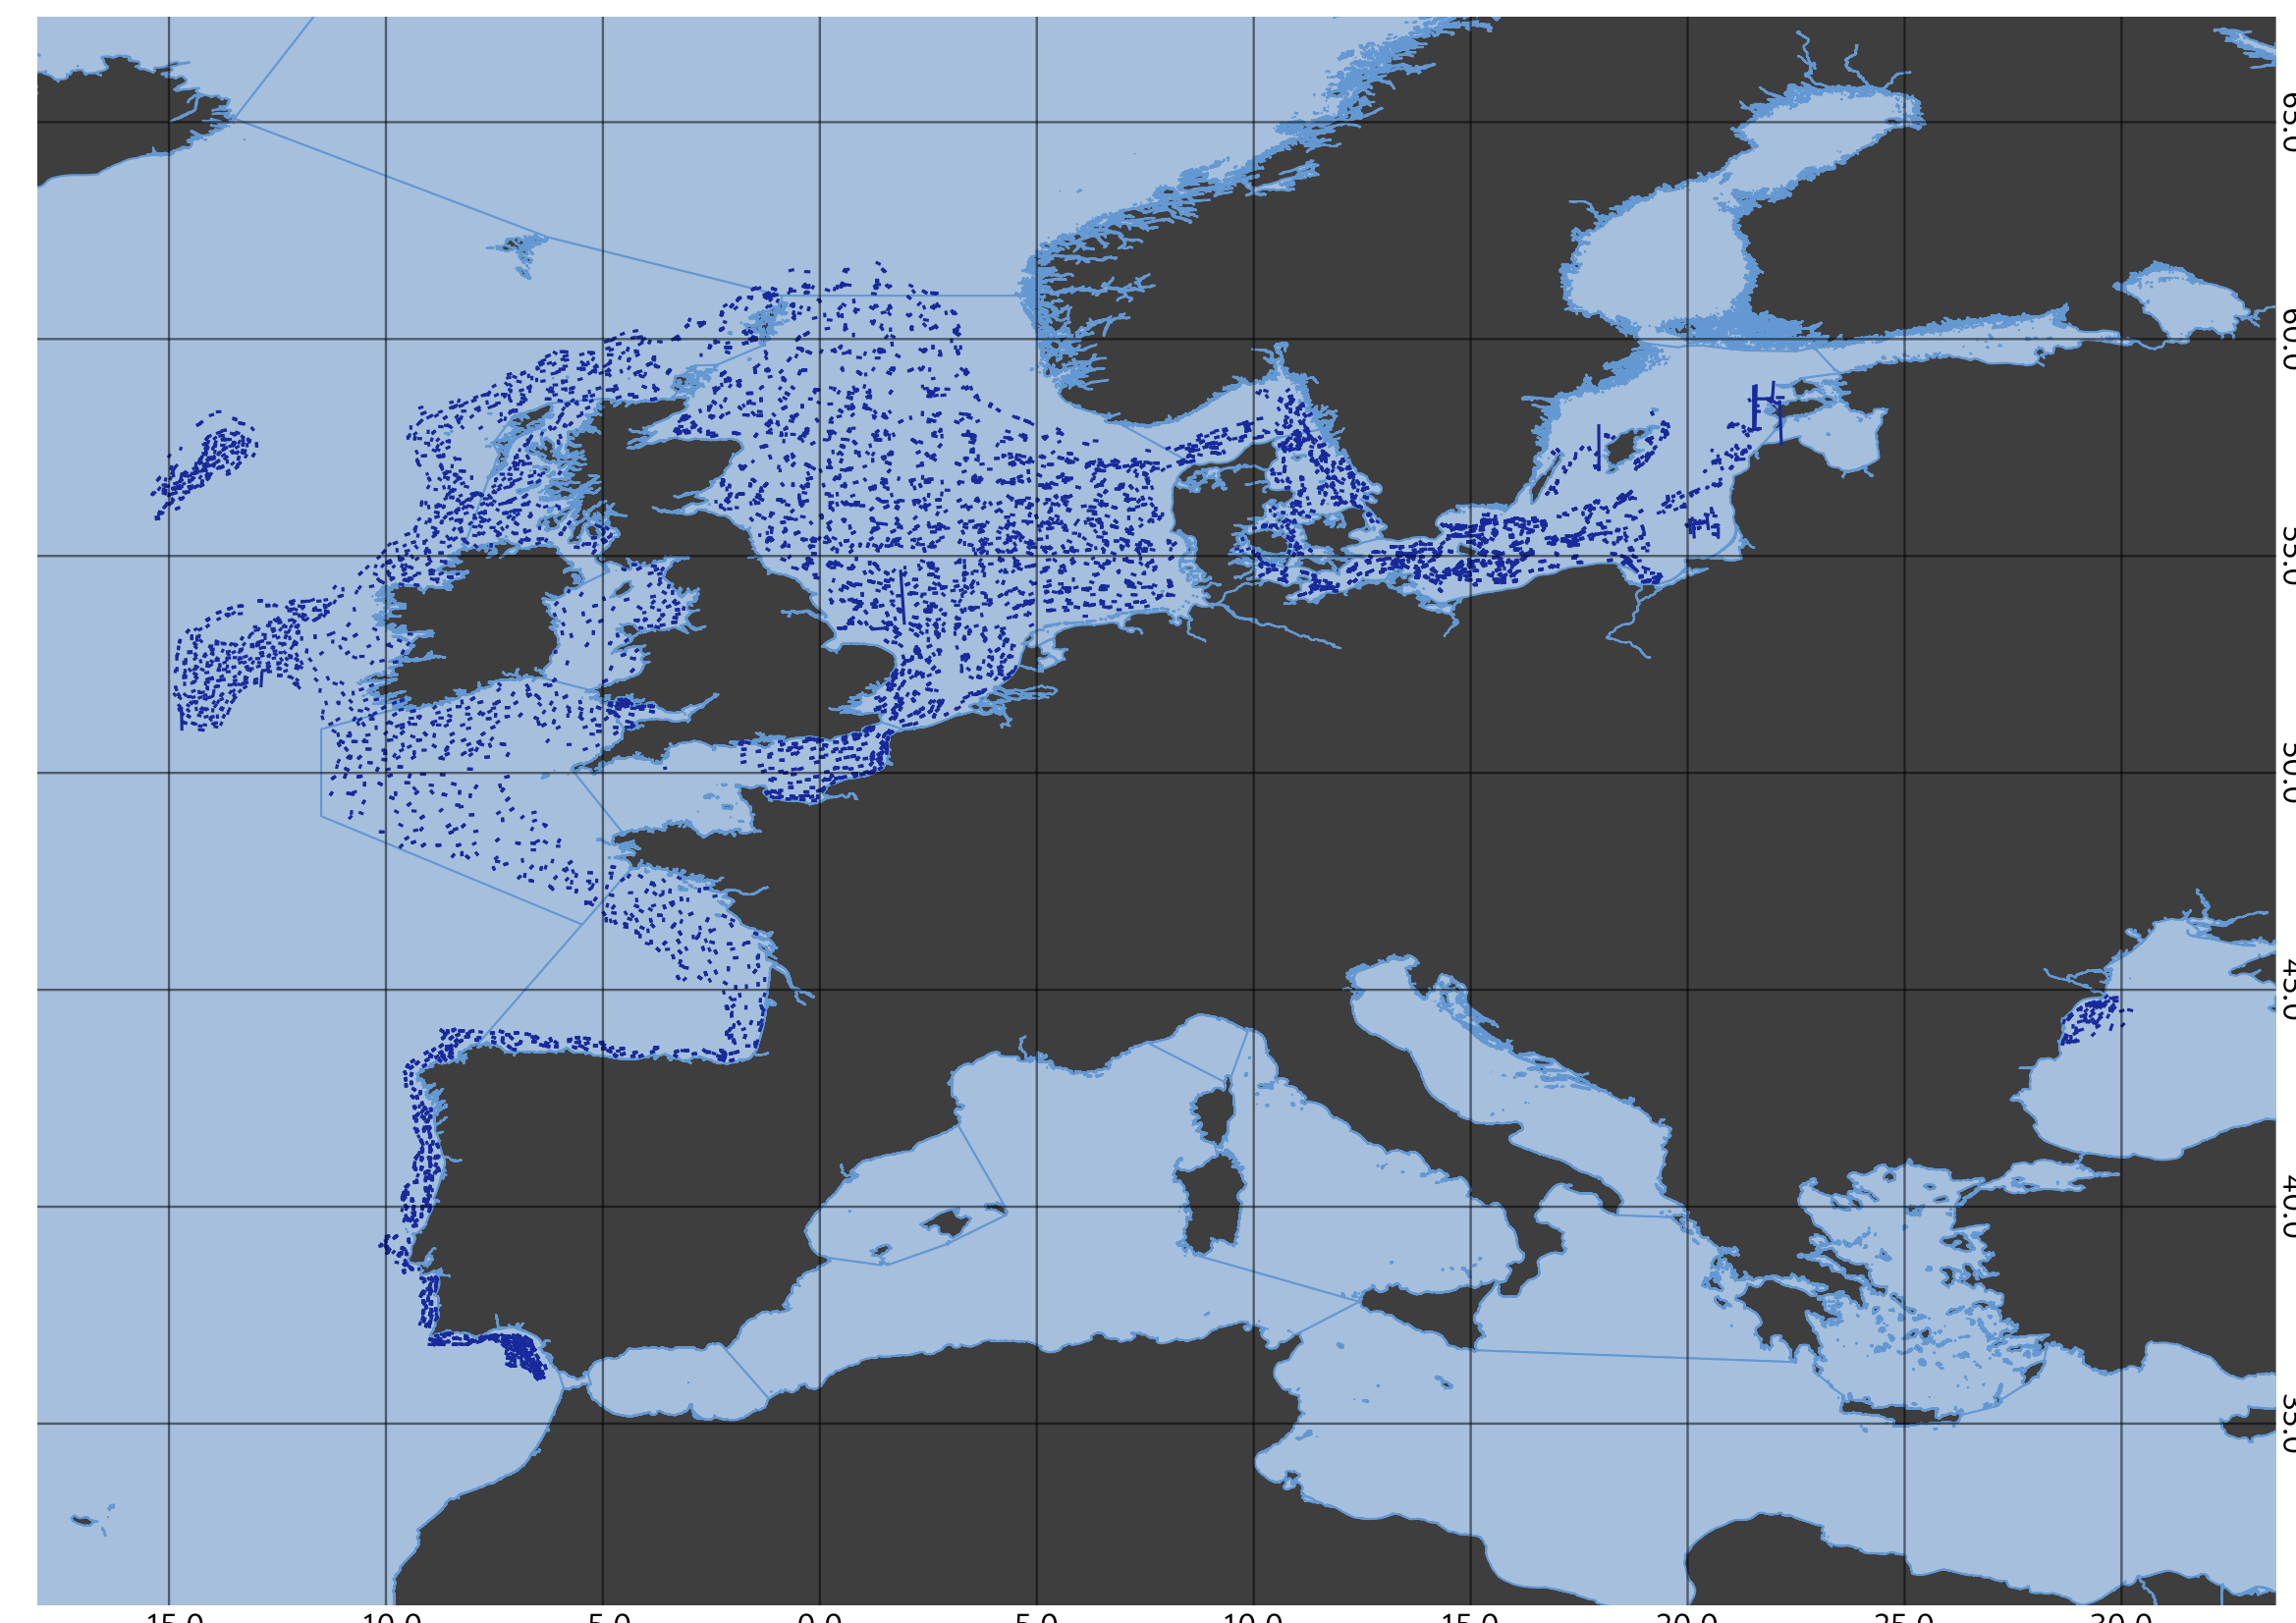 https://sextant.ifremer.fr/geonetwork/srv/api/records/dd00c70e-73be-4faa-aab0-0d5f7a438d5e/attachments/Sextant_map_seafloor_unrestricted_190517.png